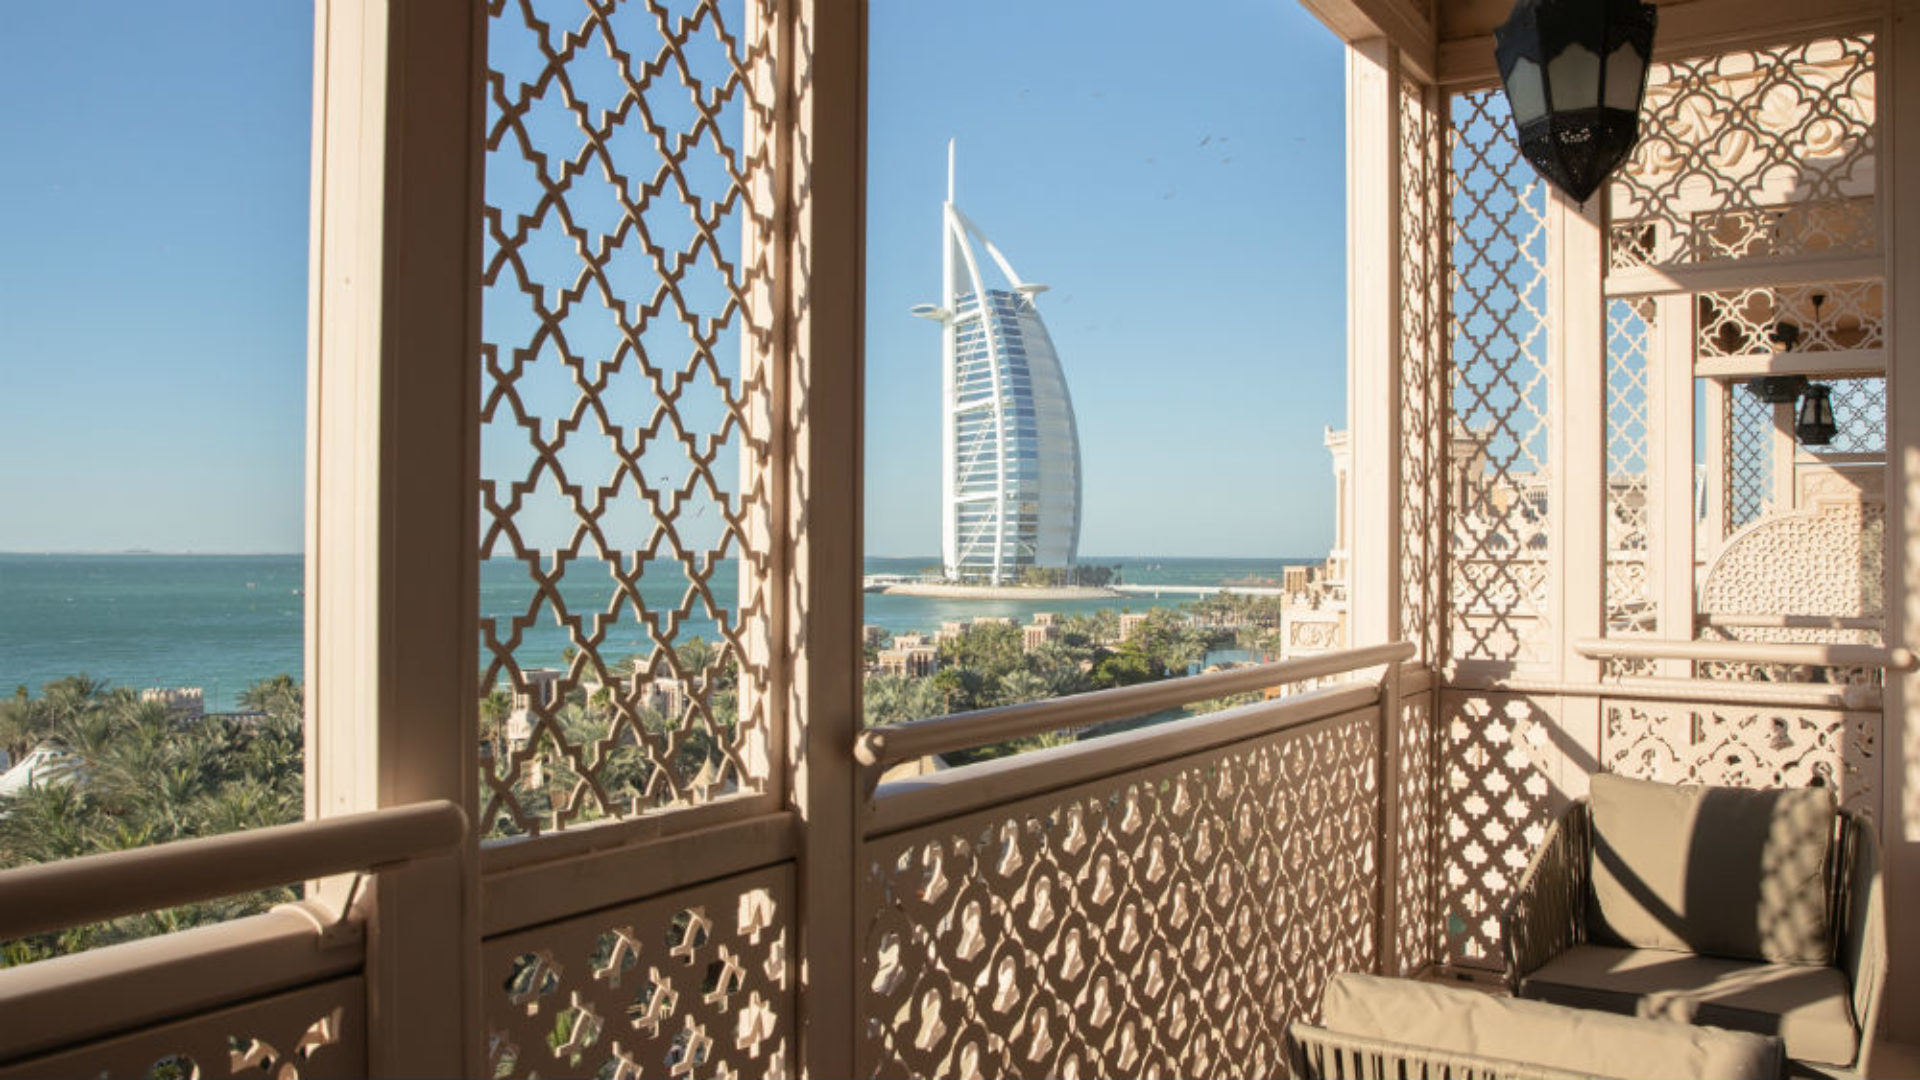 Presidential Suite Balcony at the Jumeirah Al Qasr